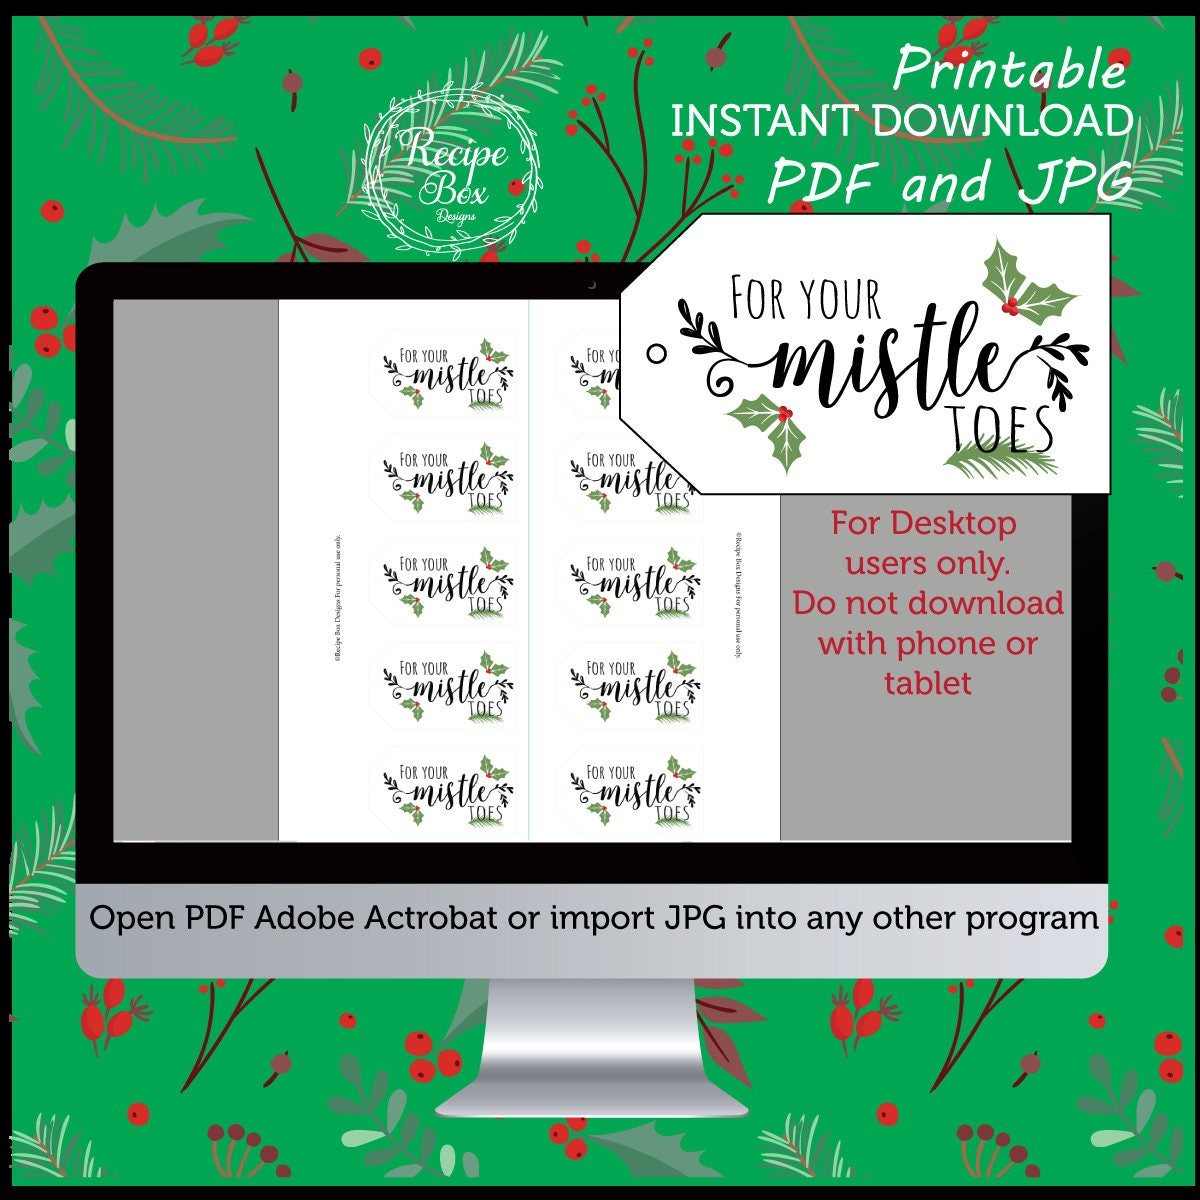 photograph about For Your Mistletoes Printable Tags titled Xmas Tags Printable, For your mistletoes printable nail